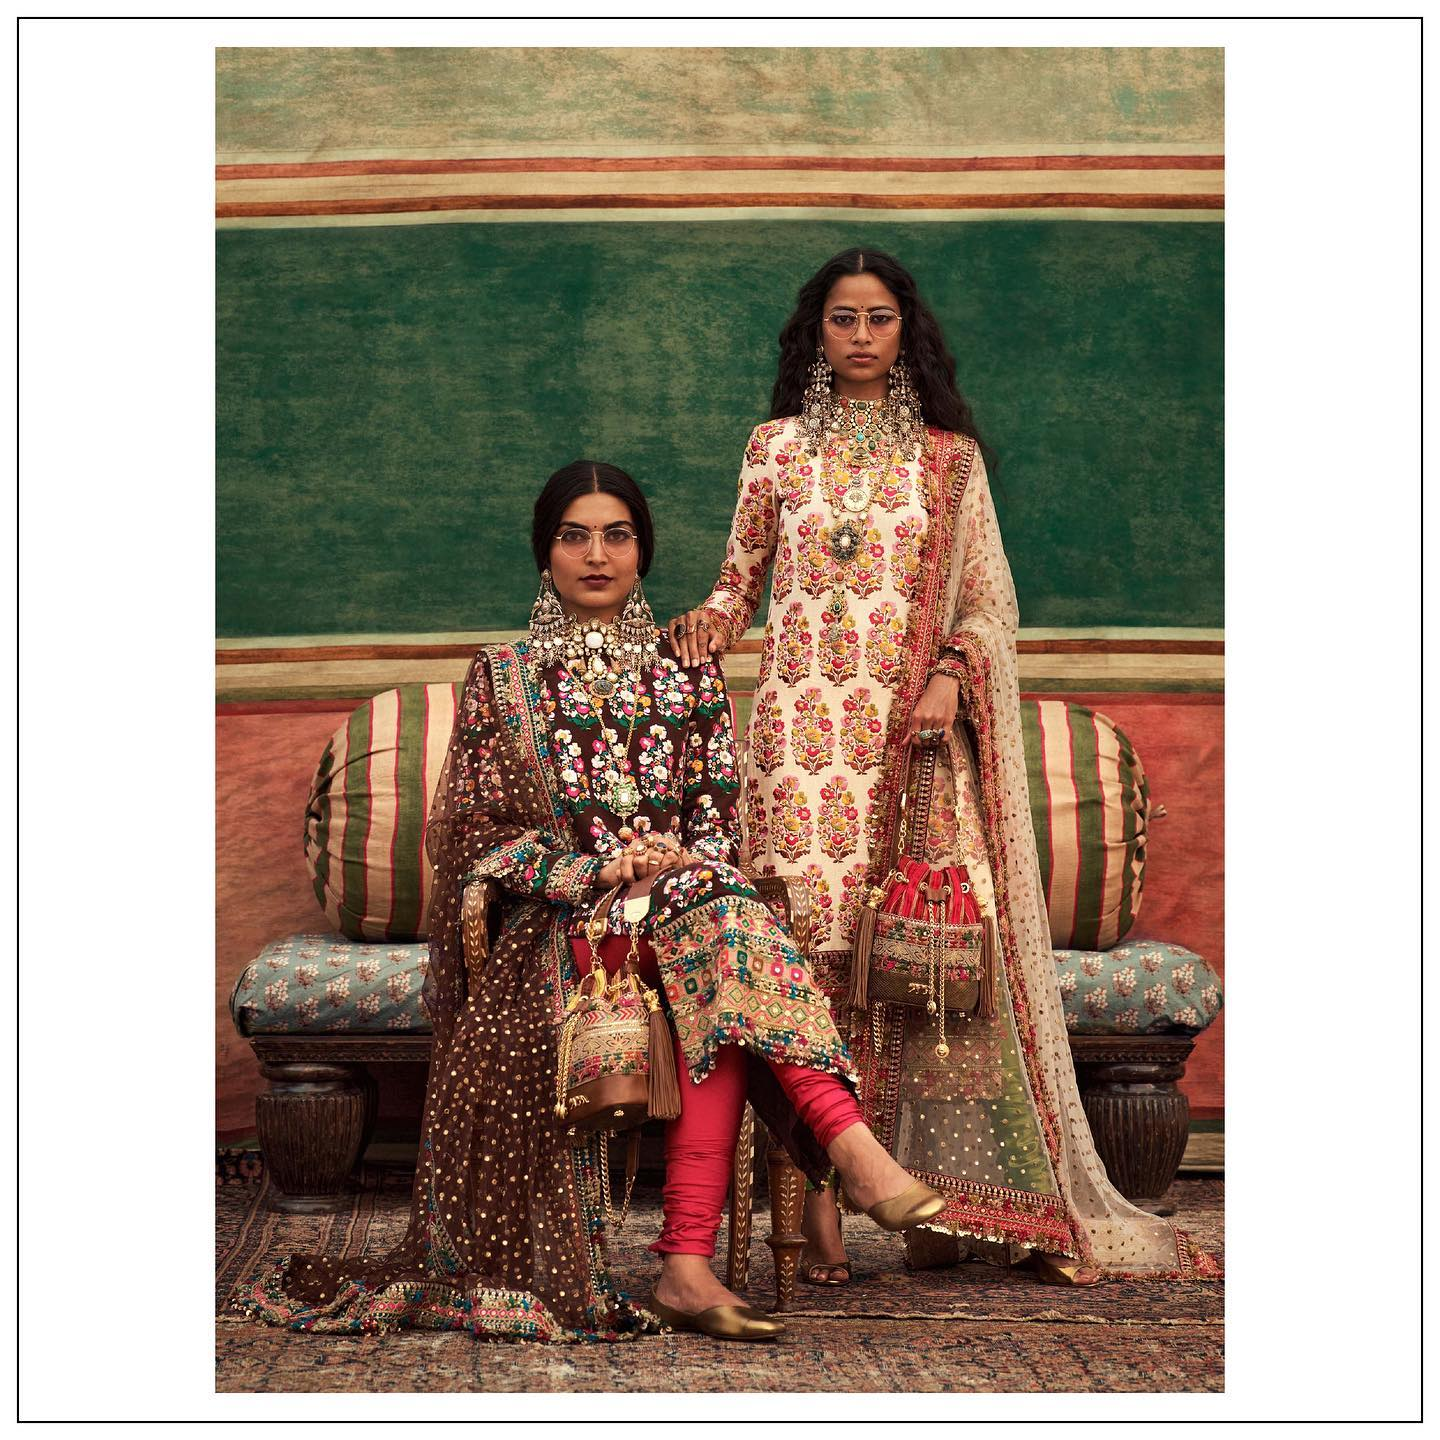 The New Collection. Sabyasachi embroidery floral kurti.   Womenswear jewellery @sabyasachijewelry and accessories @sabyasachiaccessories.  For all product related queries please email at customerservice@sabyasachi.com or contact retail stores directly. 2021-09-16